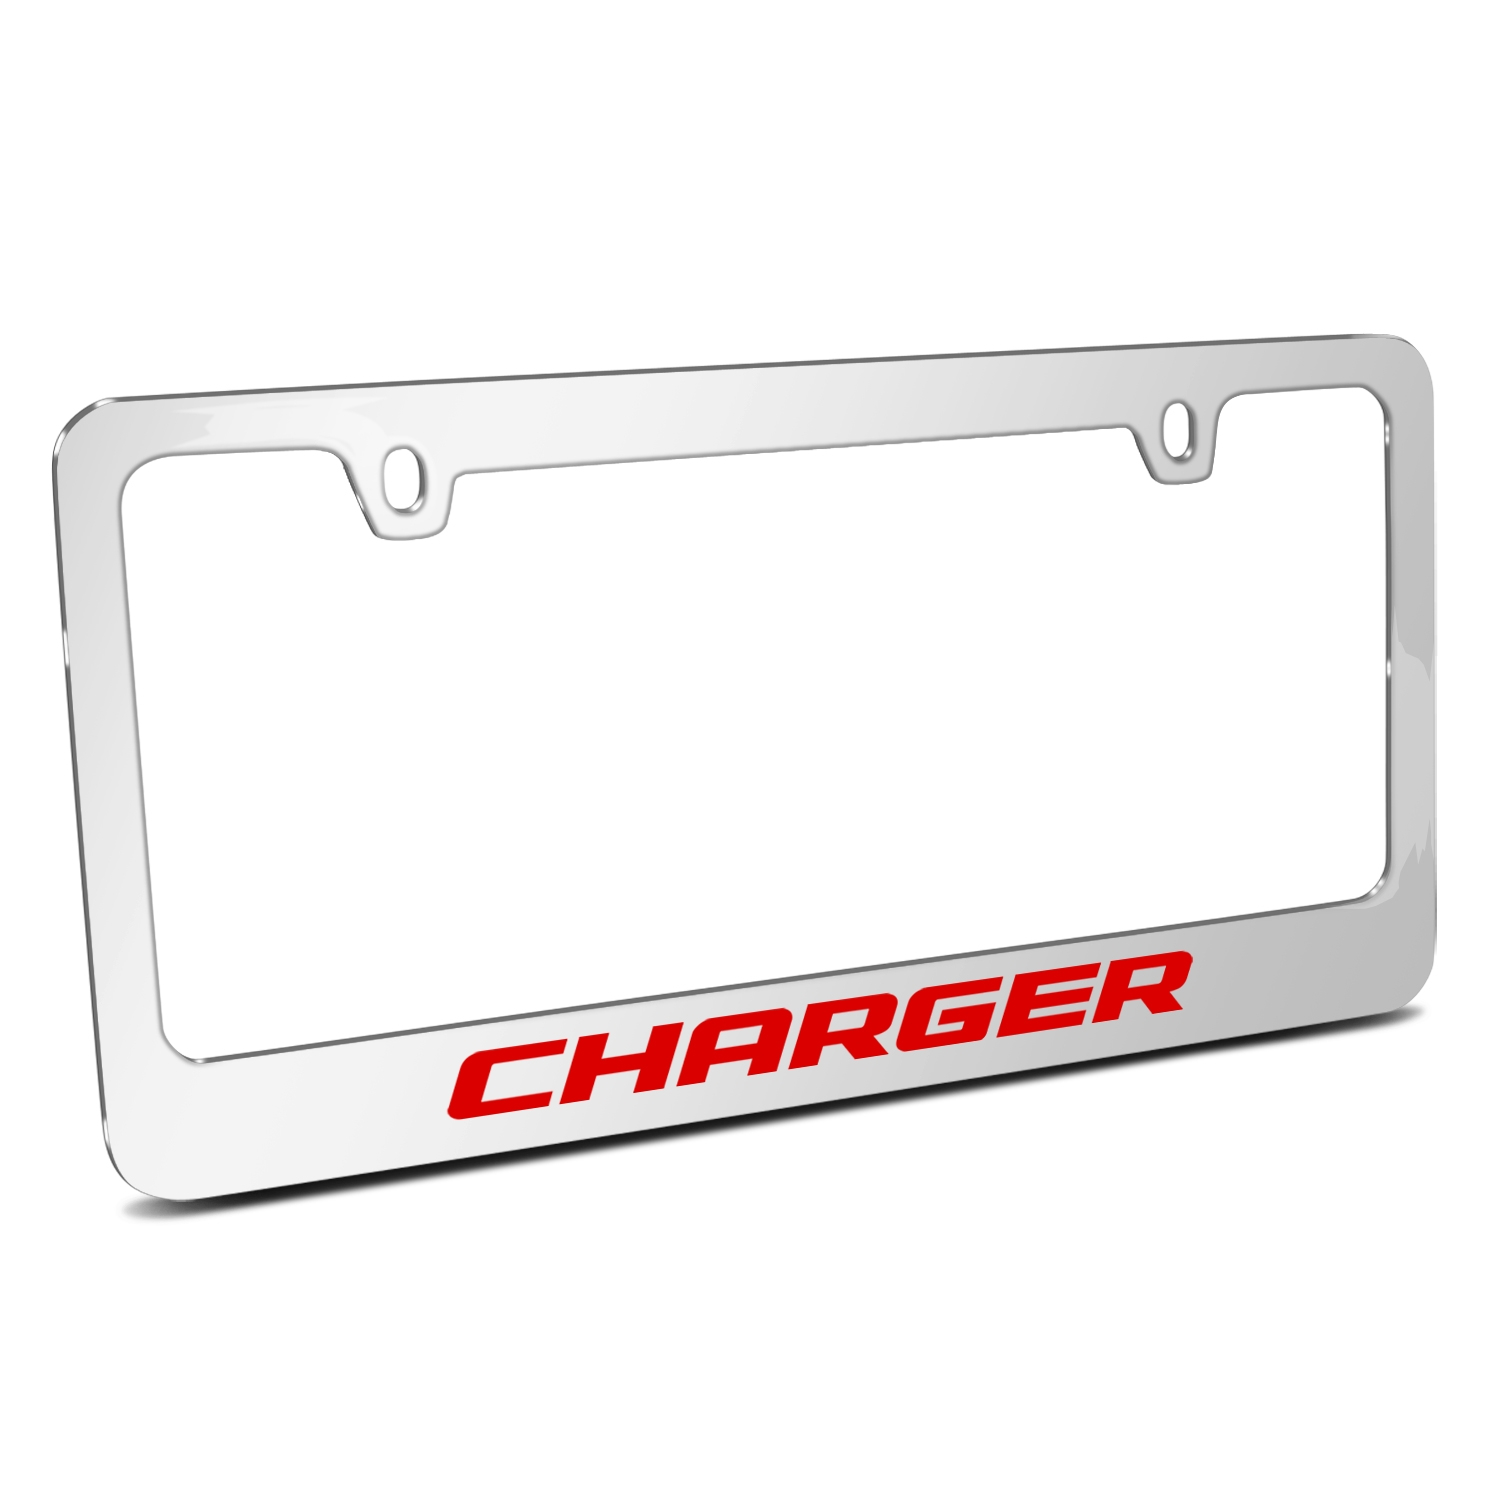 Dodge Charger in Red Mirror Chrome Metal License Plate Frame